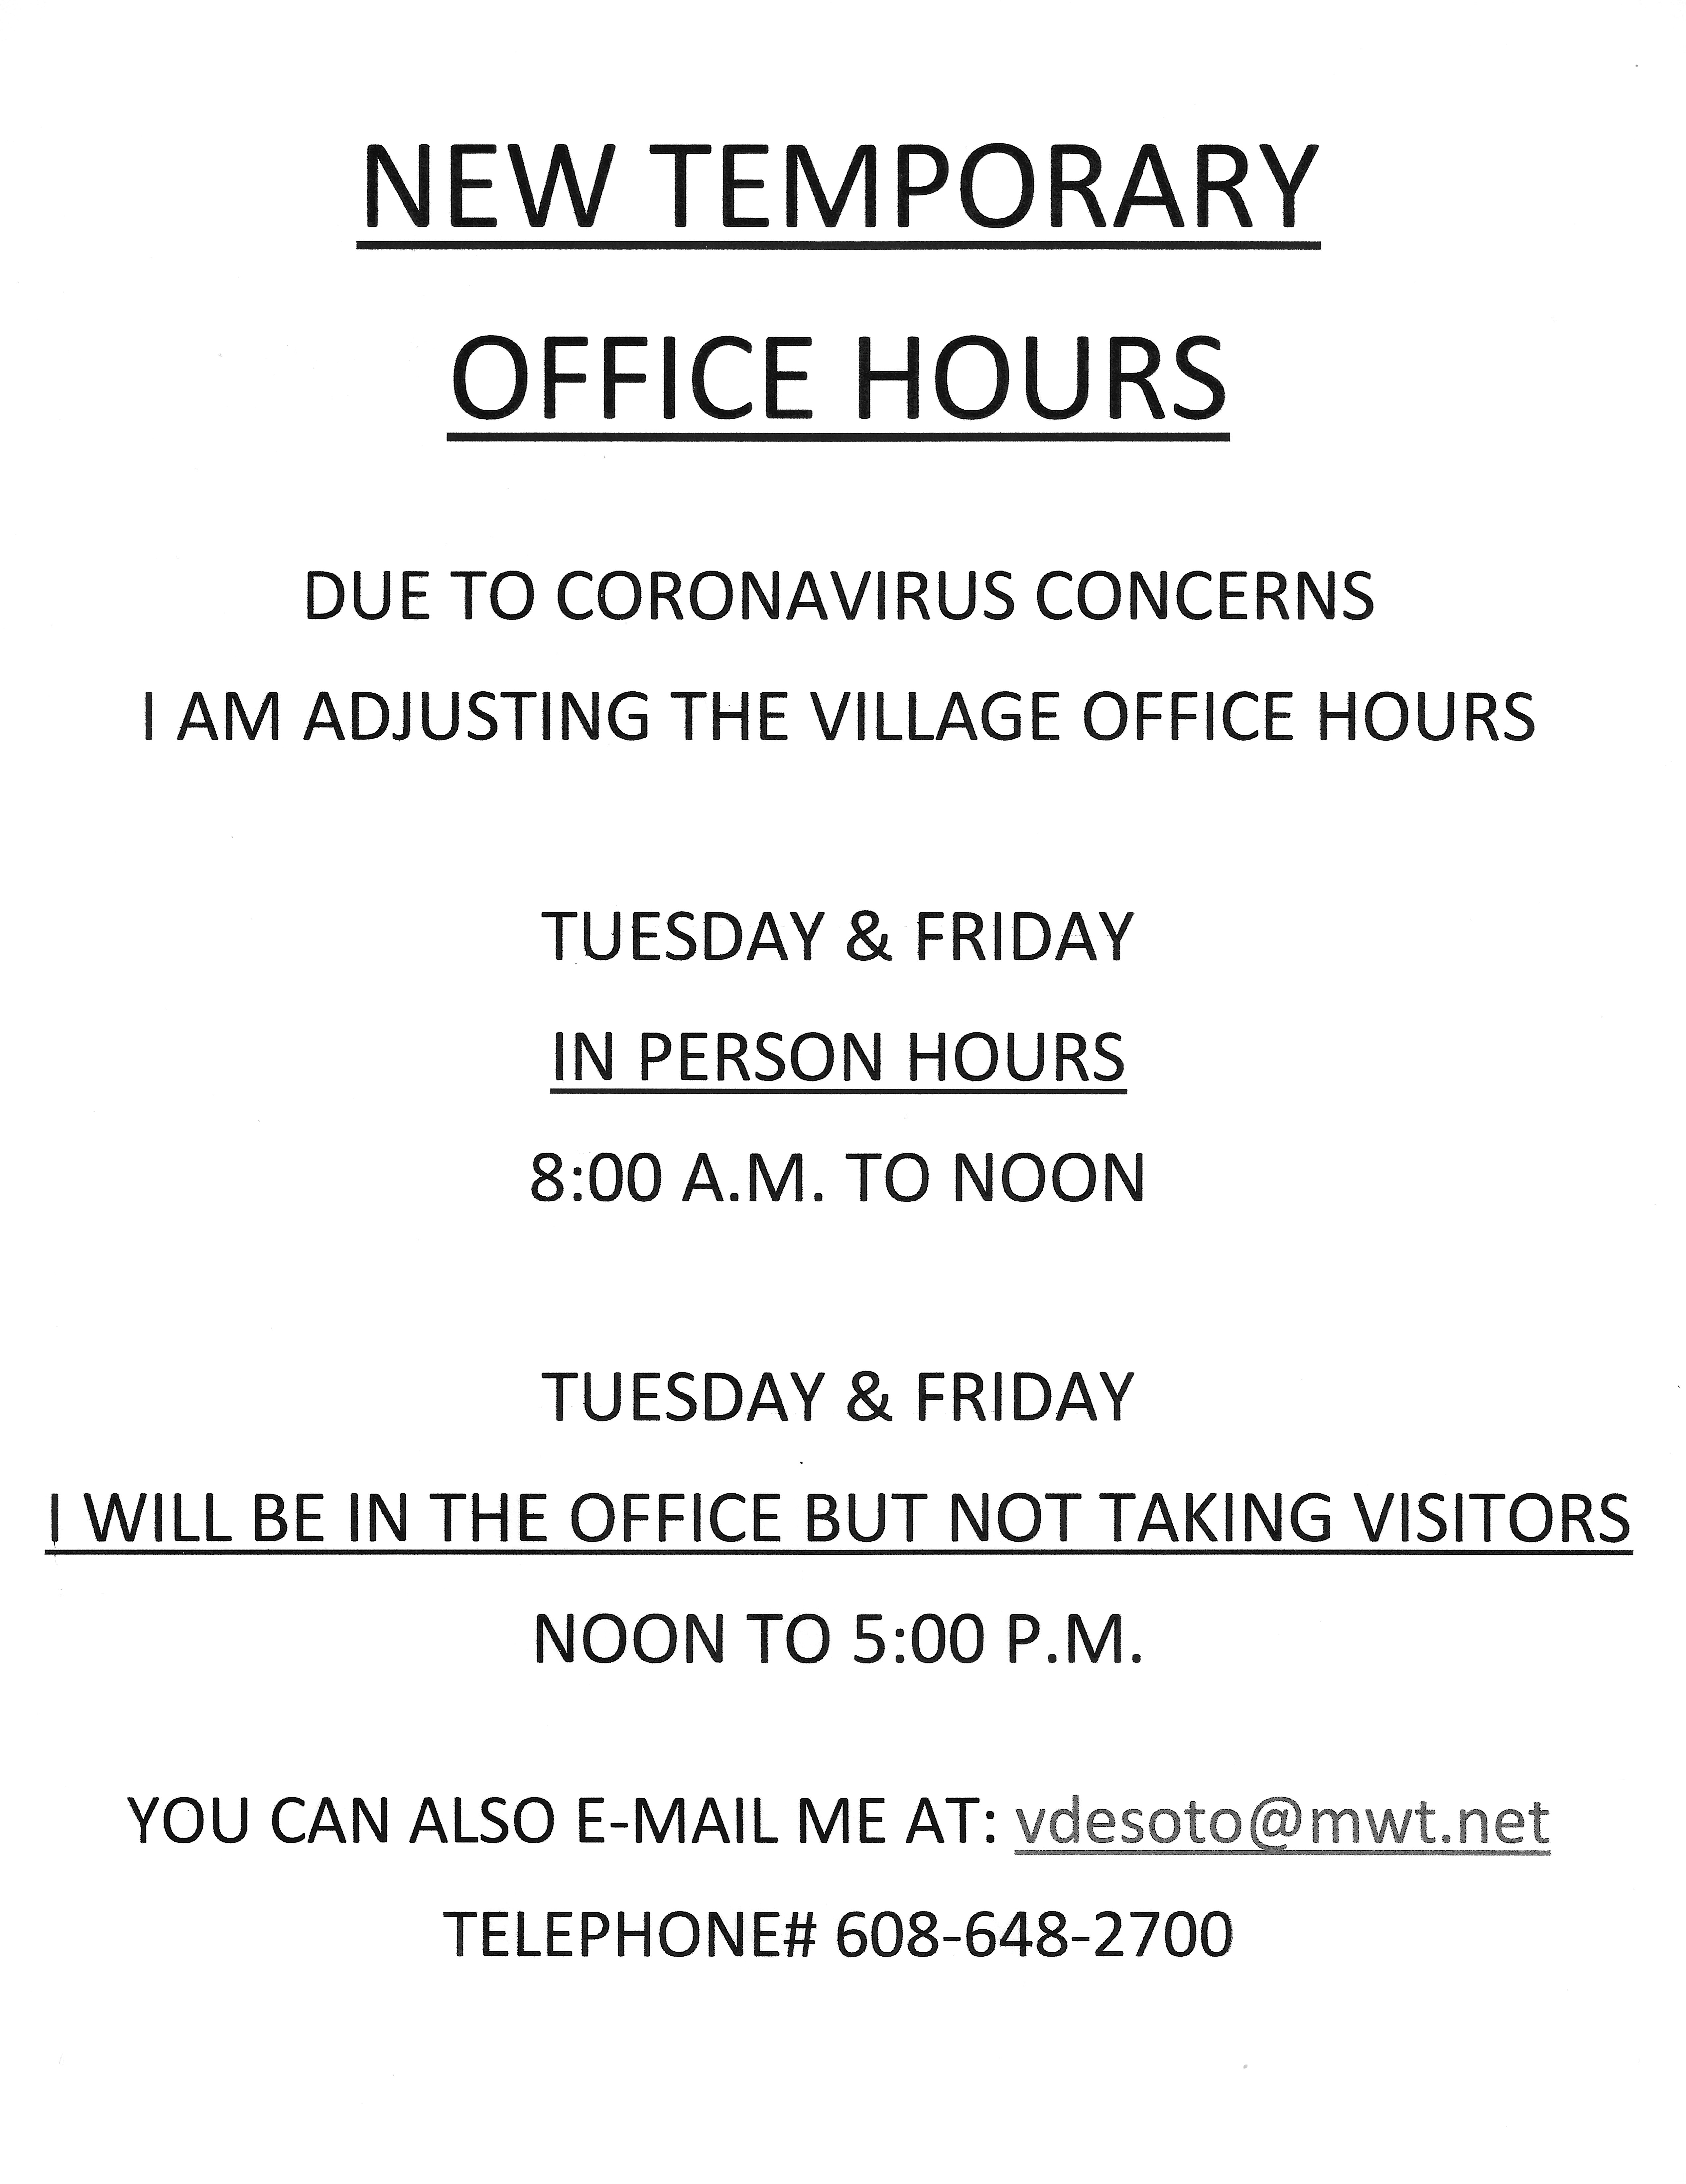 TEMPORARY VILLAGE OFFICE HOURS - 2020-03-21_125051